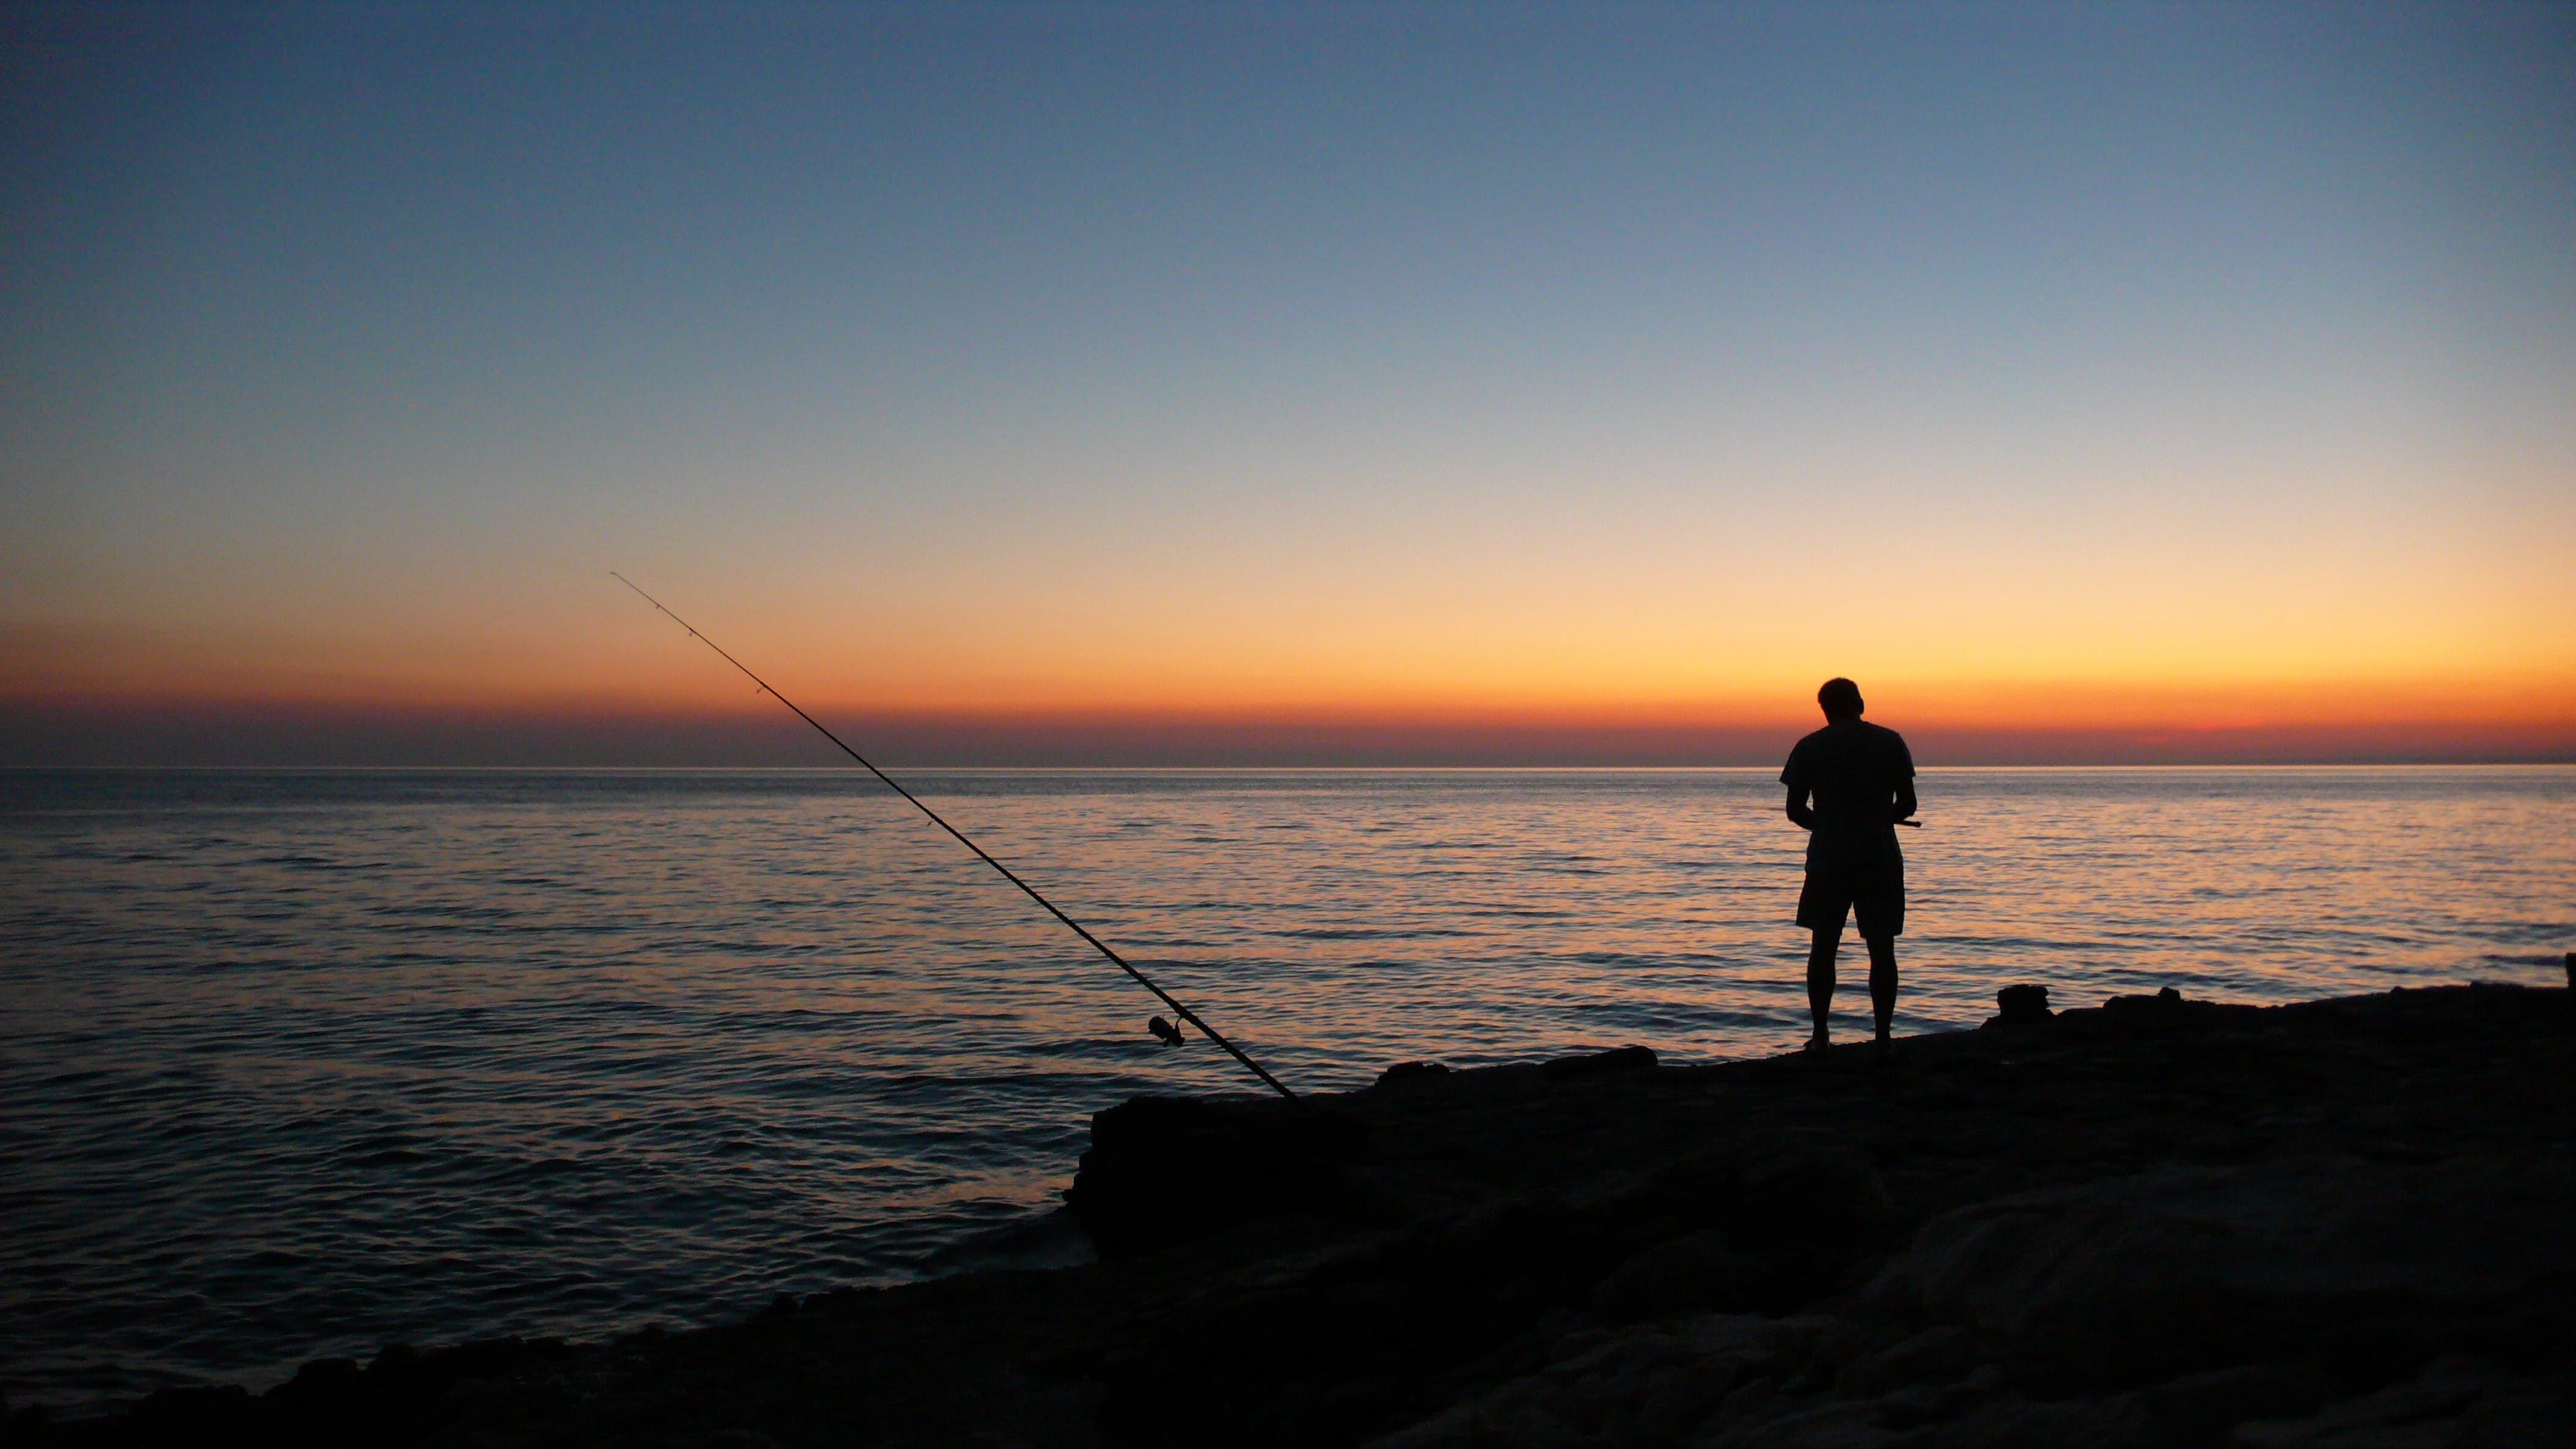 Person Fishing during Sunset